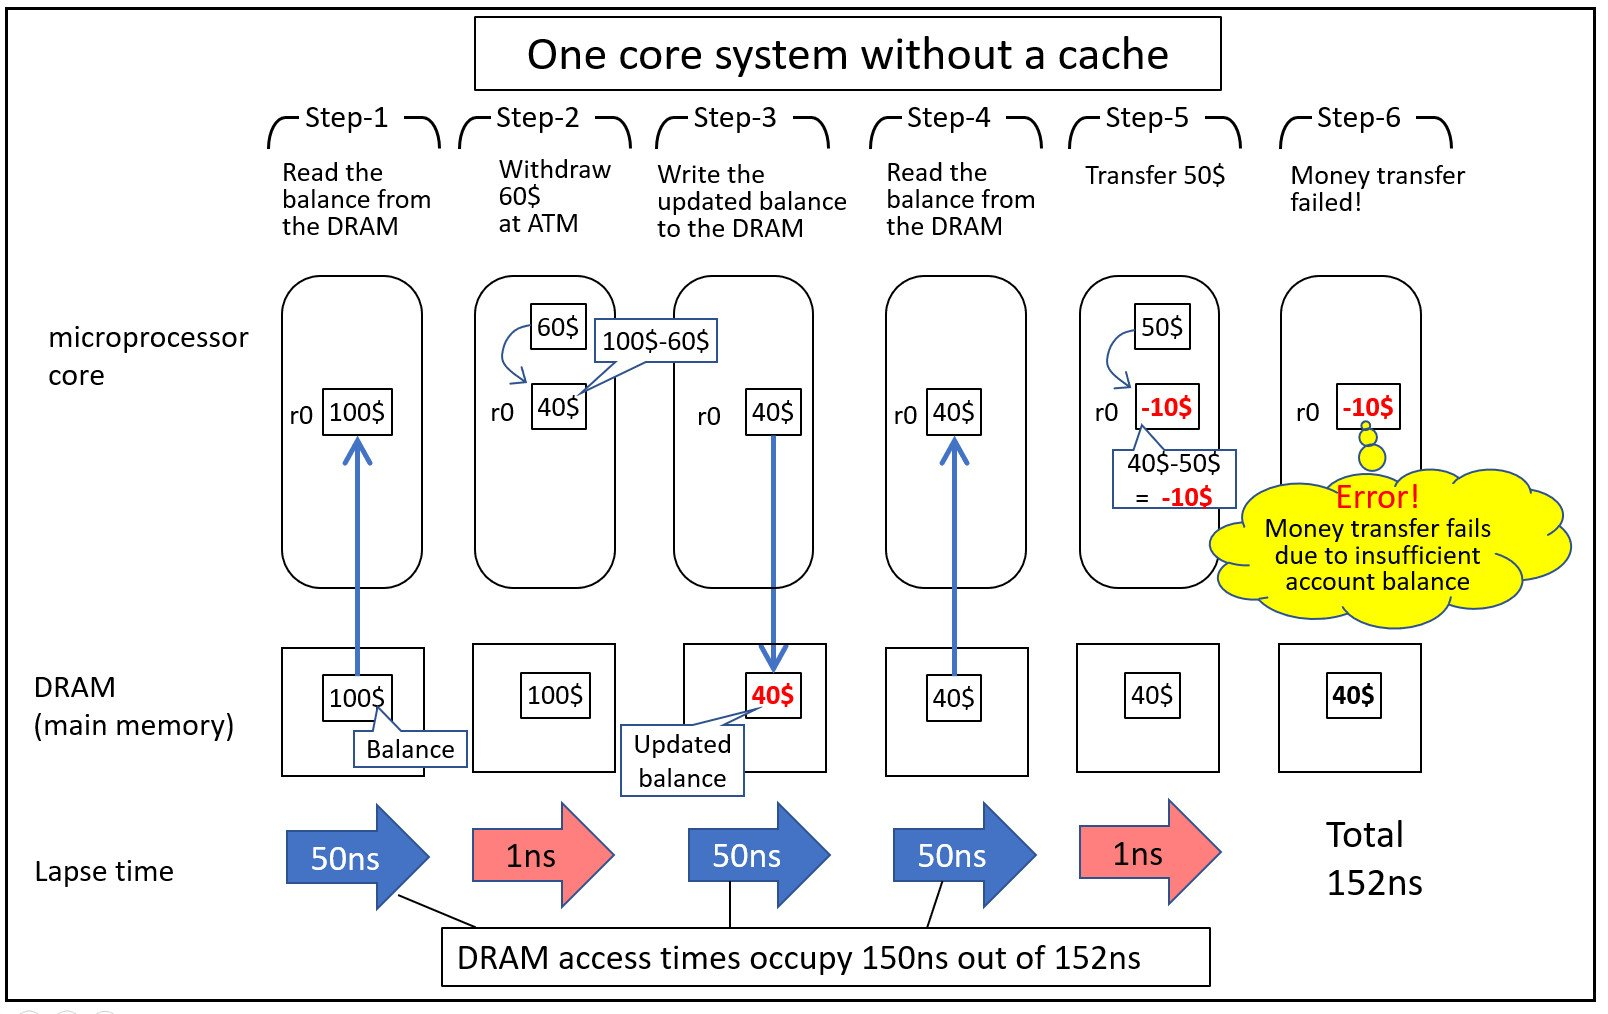 A visual diagram of how the banking example works for a one core system without a cache along with the time lapse for each process.